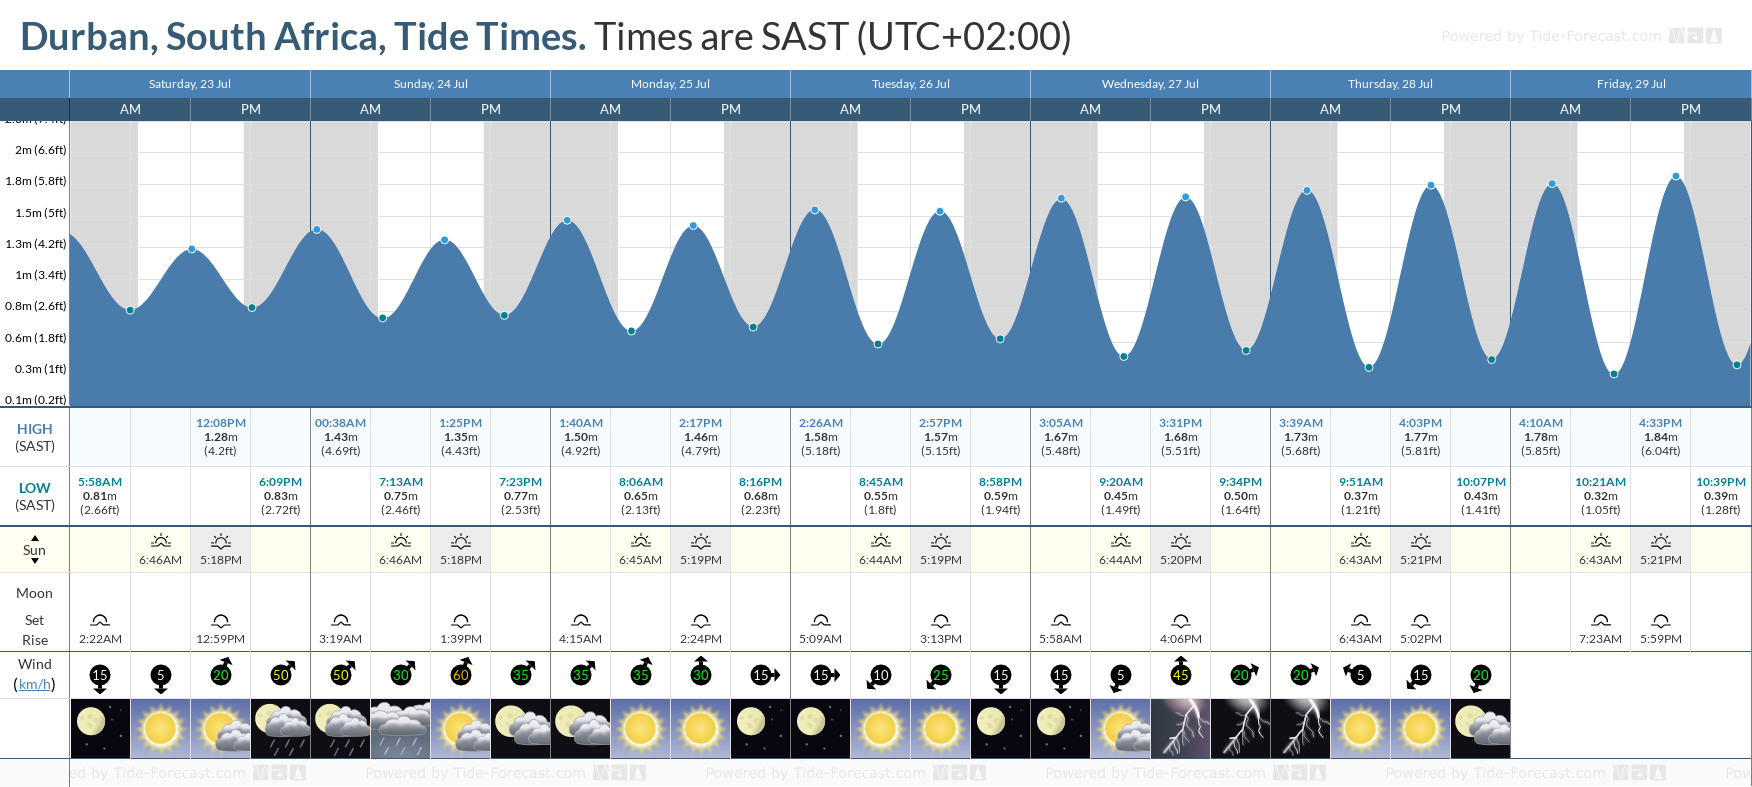 Durban, South Africa Tide Chart including high and low tide tide times for the next 7 days